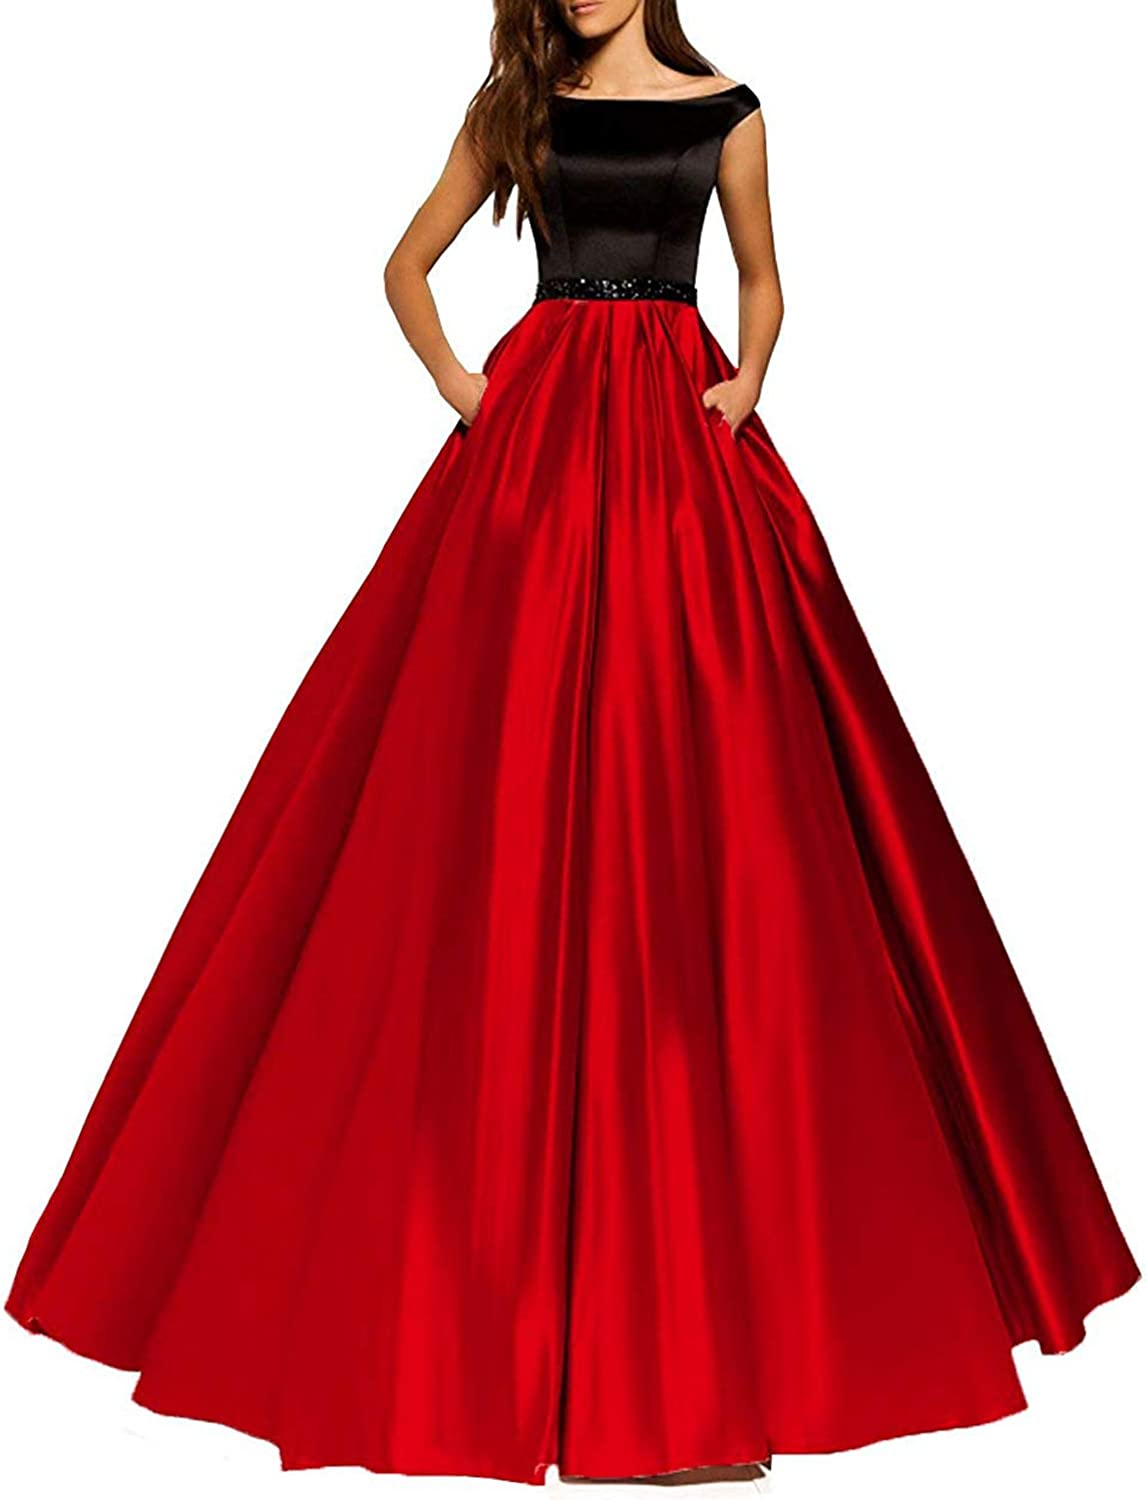 JoyVany Women Off Shoulder Prom Dresses 2019 Long Formal Evening Party Gowns with Pockets JP0043